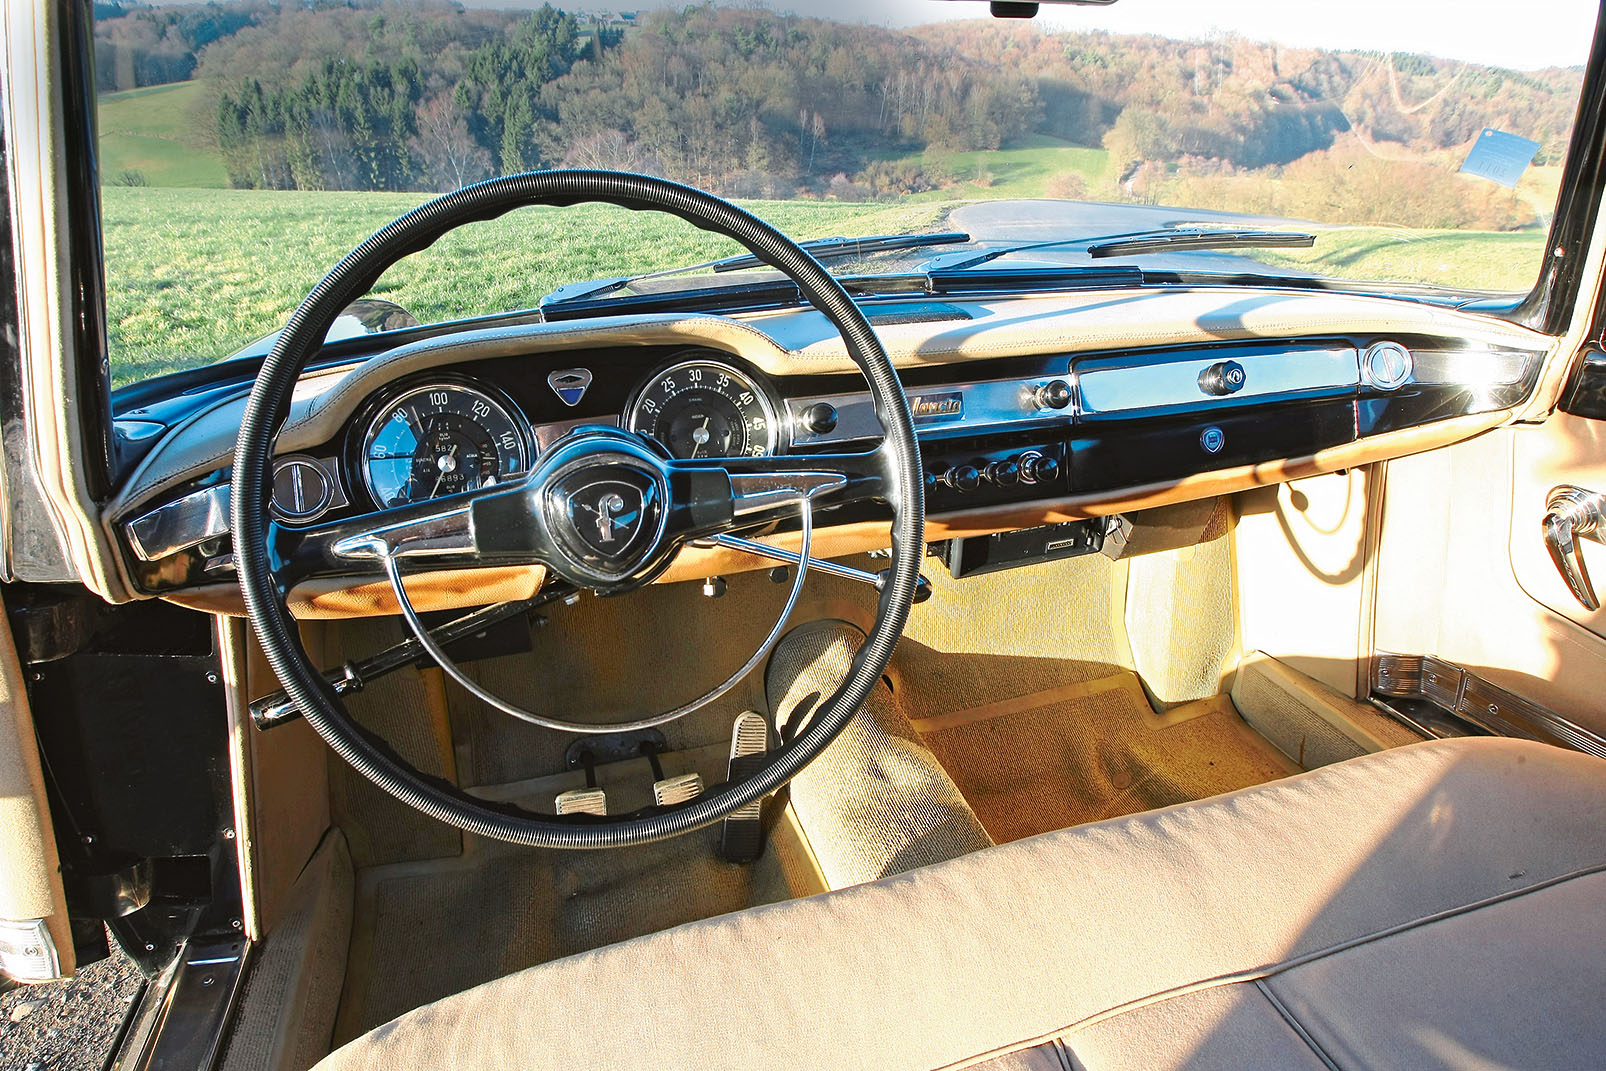 Lancia Flaminia dashboard